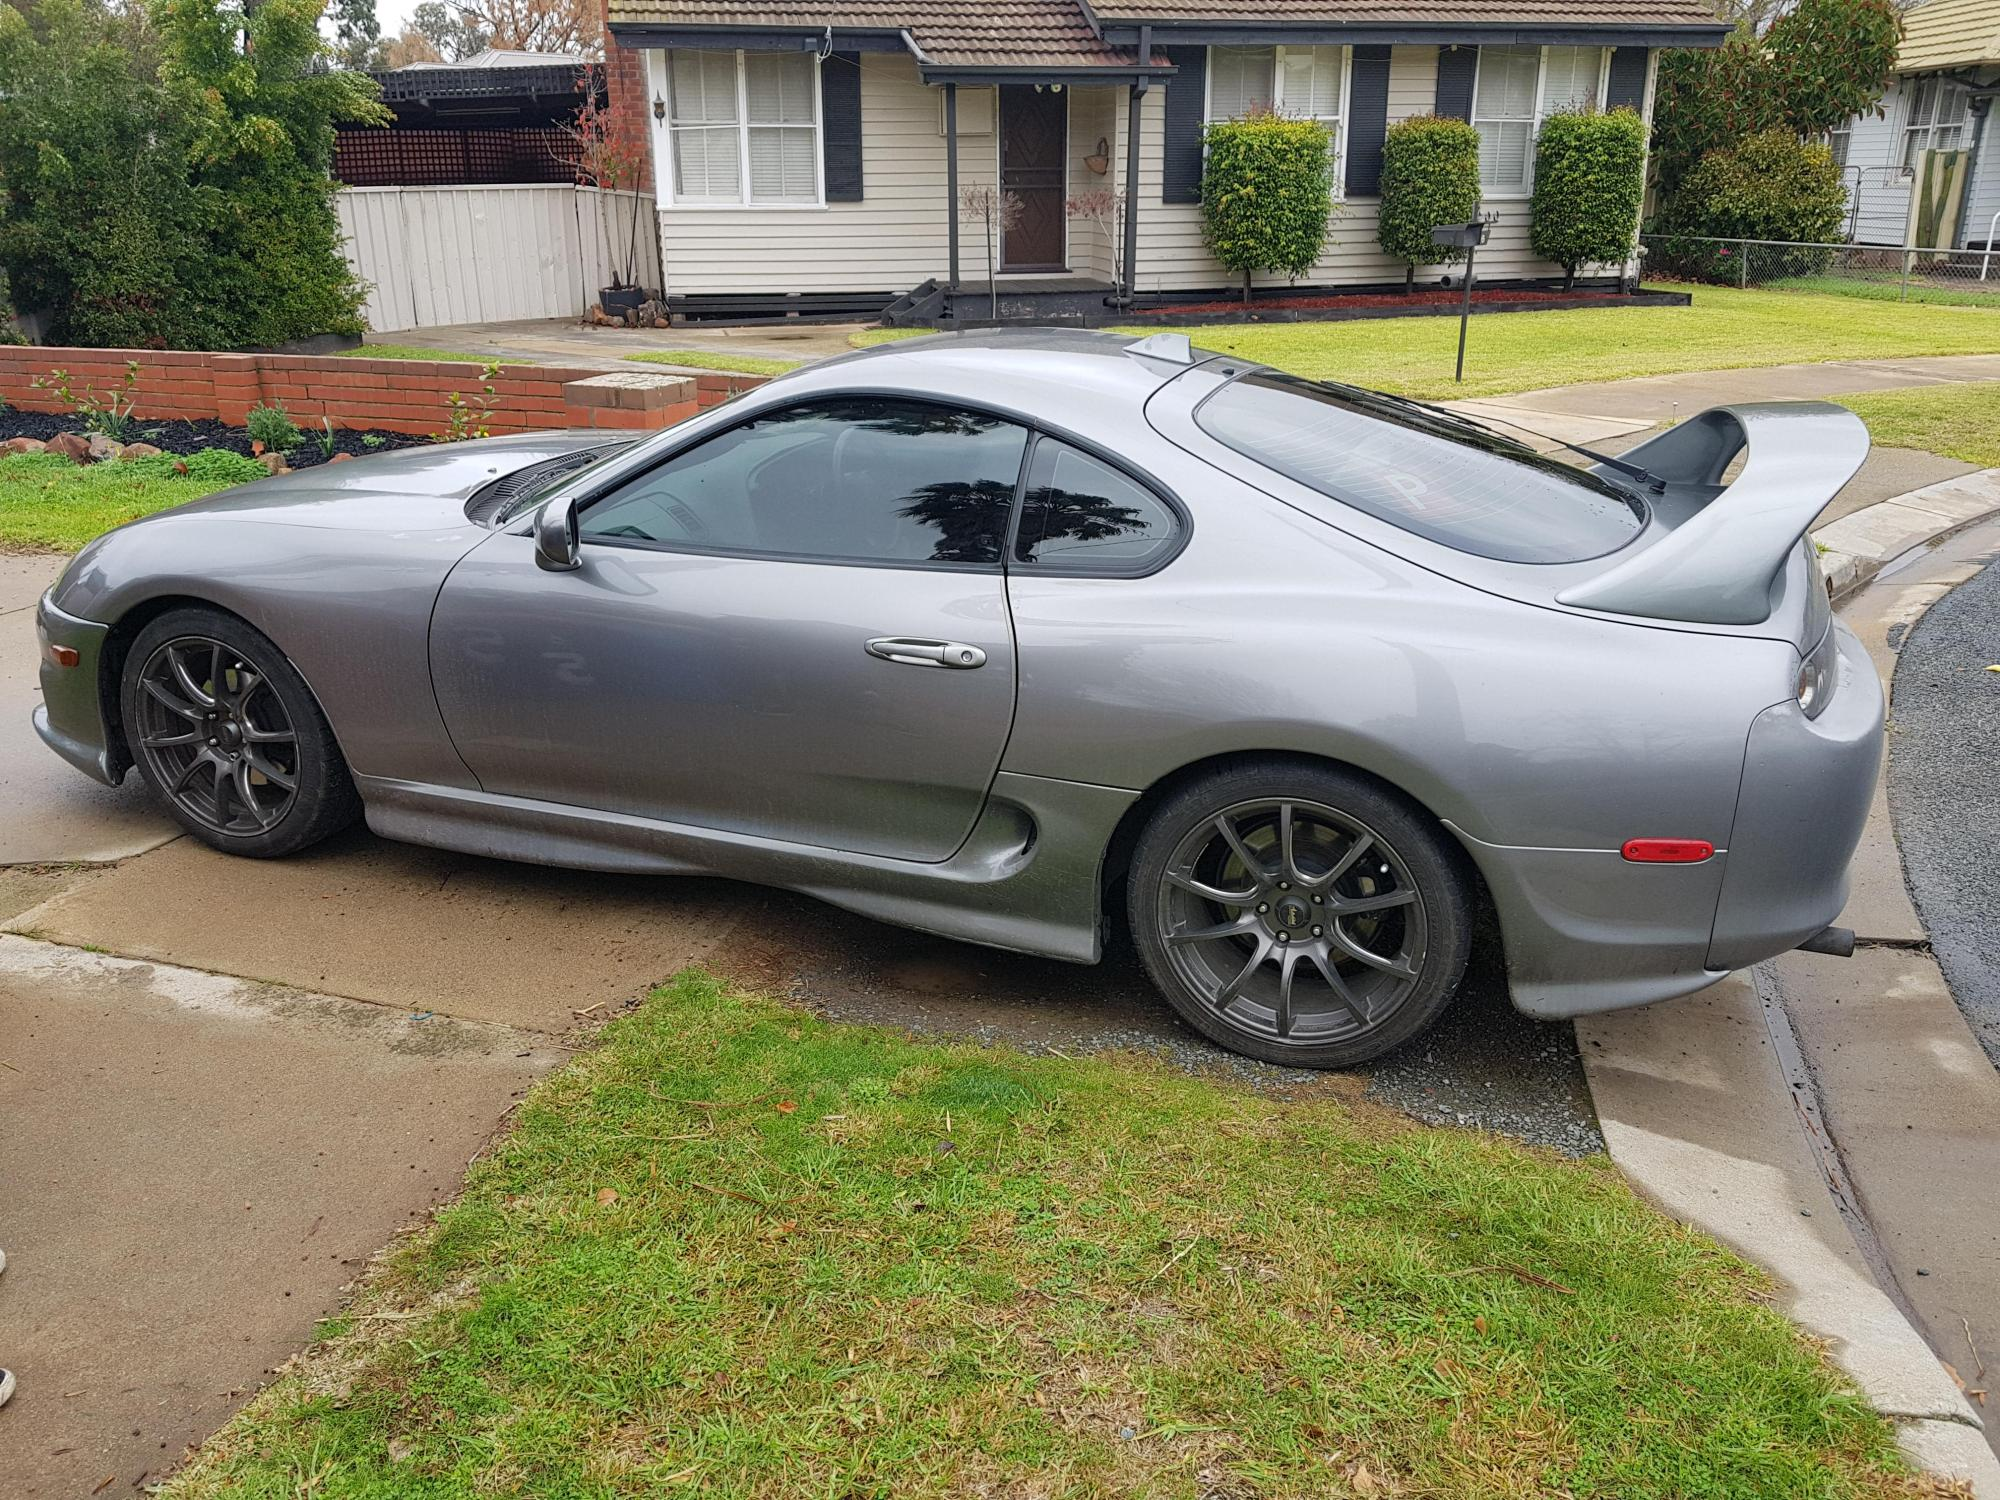 hight resolution of 2001 supra might not be that special to some but dads first car was a first gen supra and they were planning to work on it together